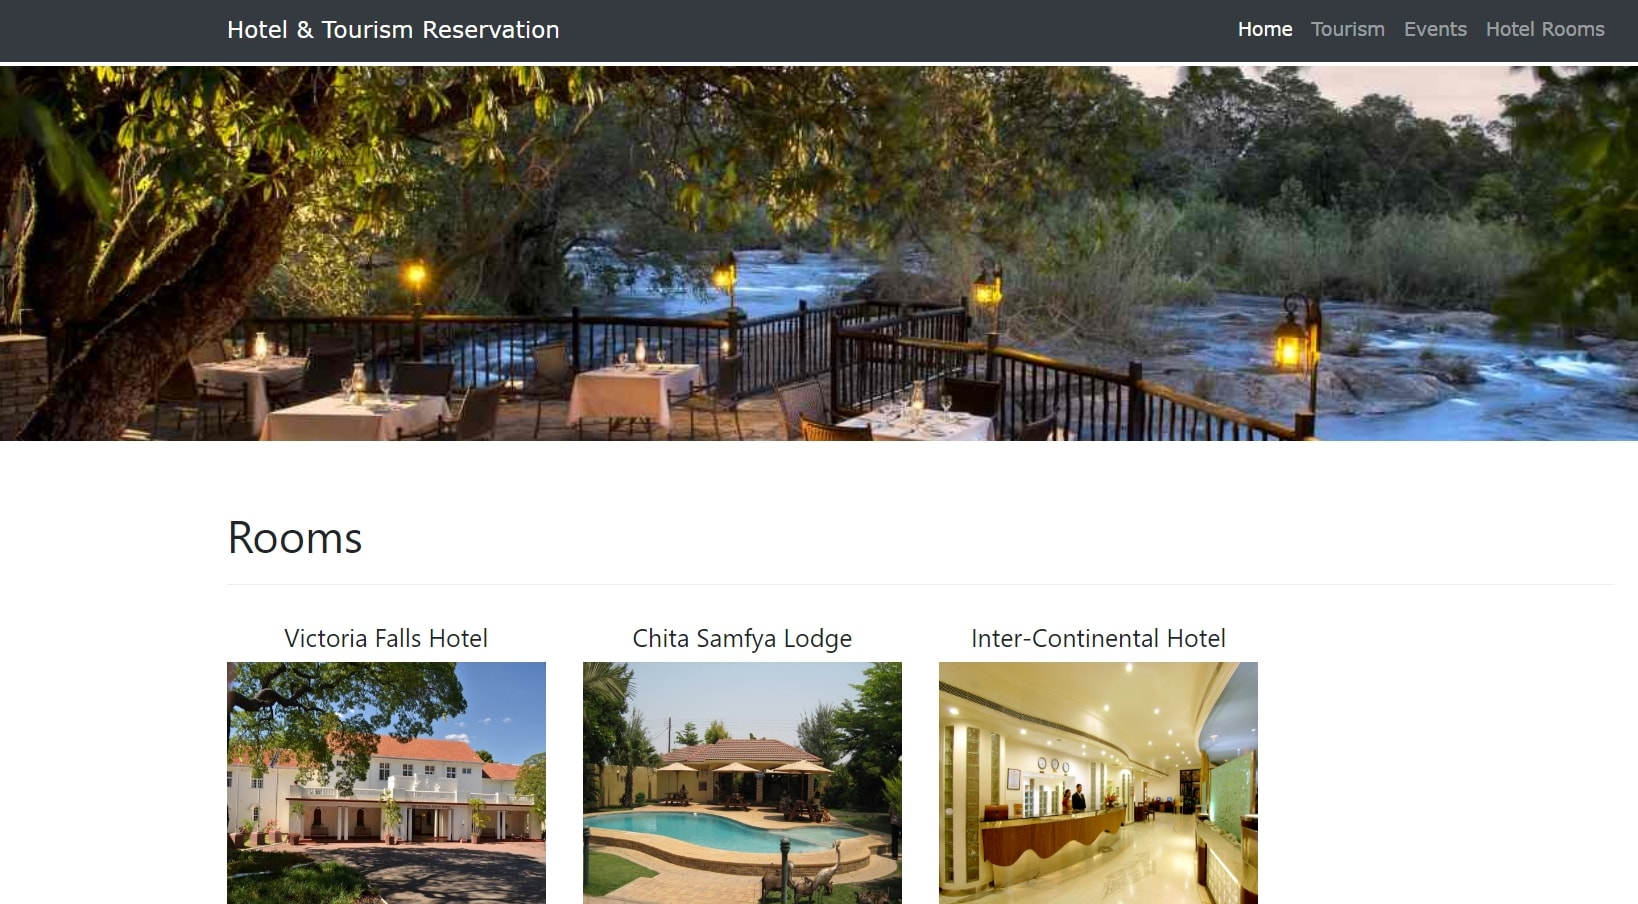 image of hotel and tourism reservation